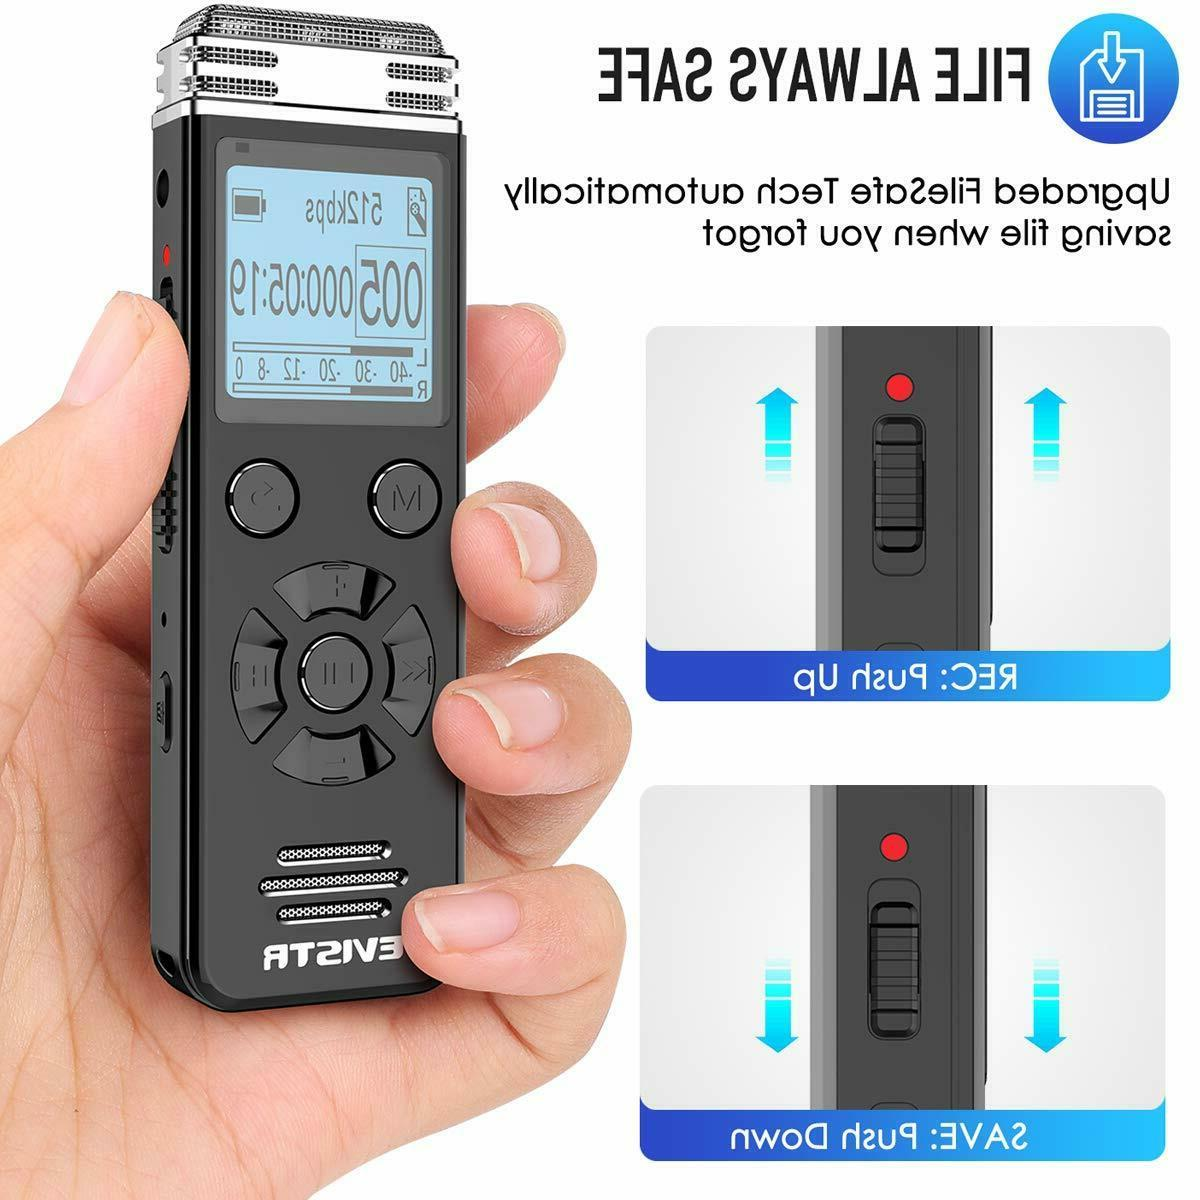 EVISTR 16gb Digital Voice Recorder for Lectures Meetings - Recordi